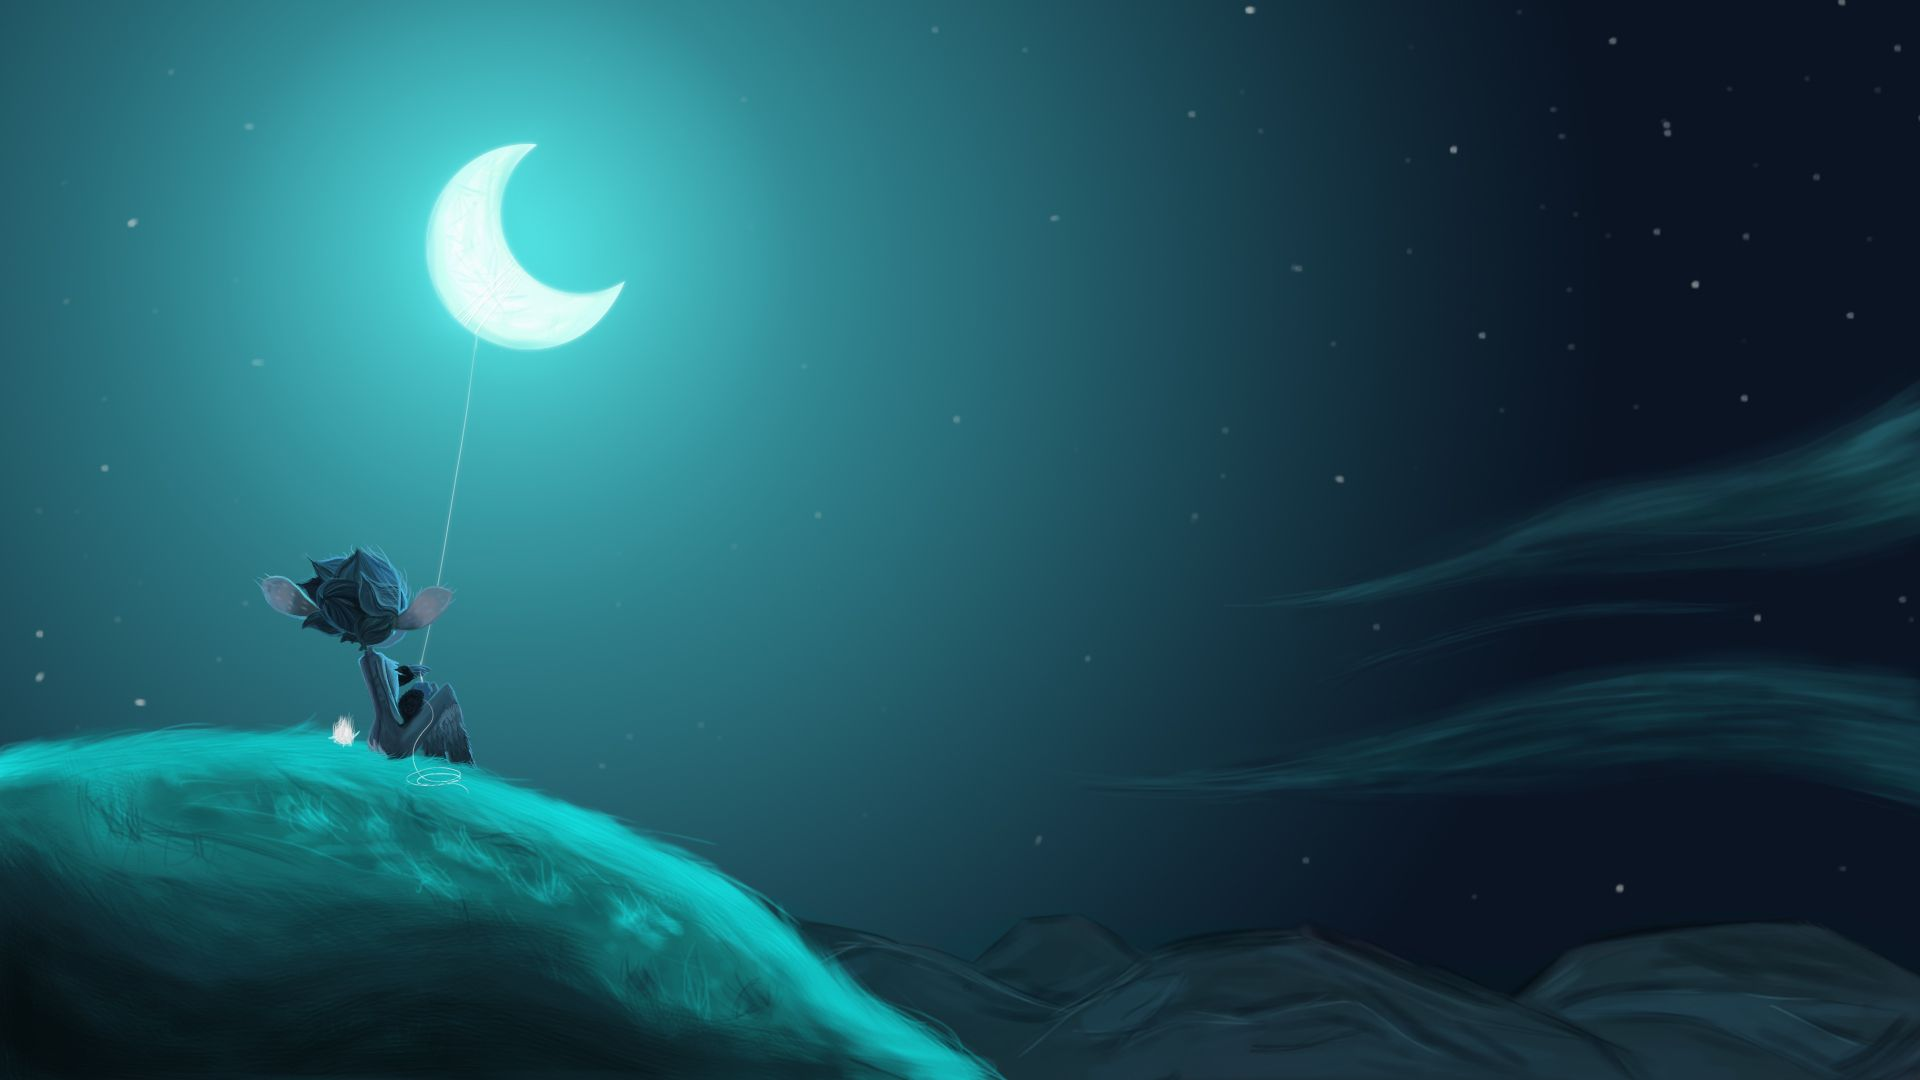 Mune Guardian Of The Moon Wallpaper 1920x1080 A Very Inspiring Animated Film Guardiao Anime Filmes